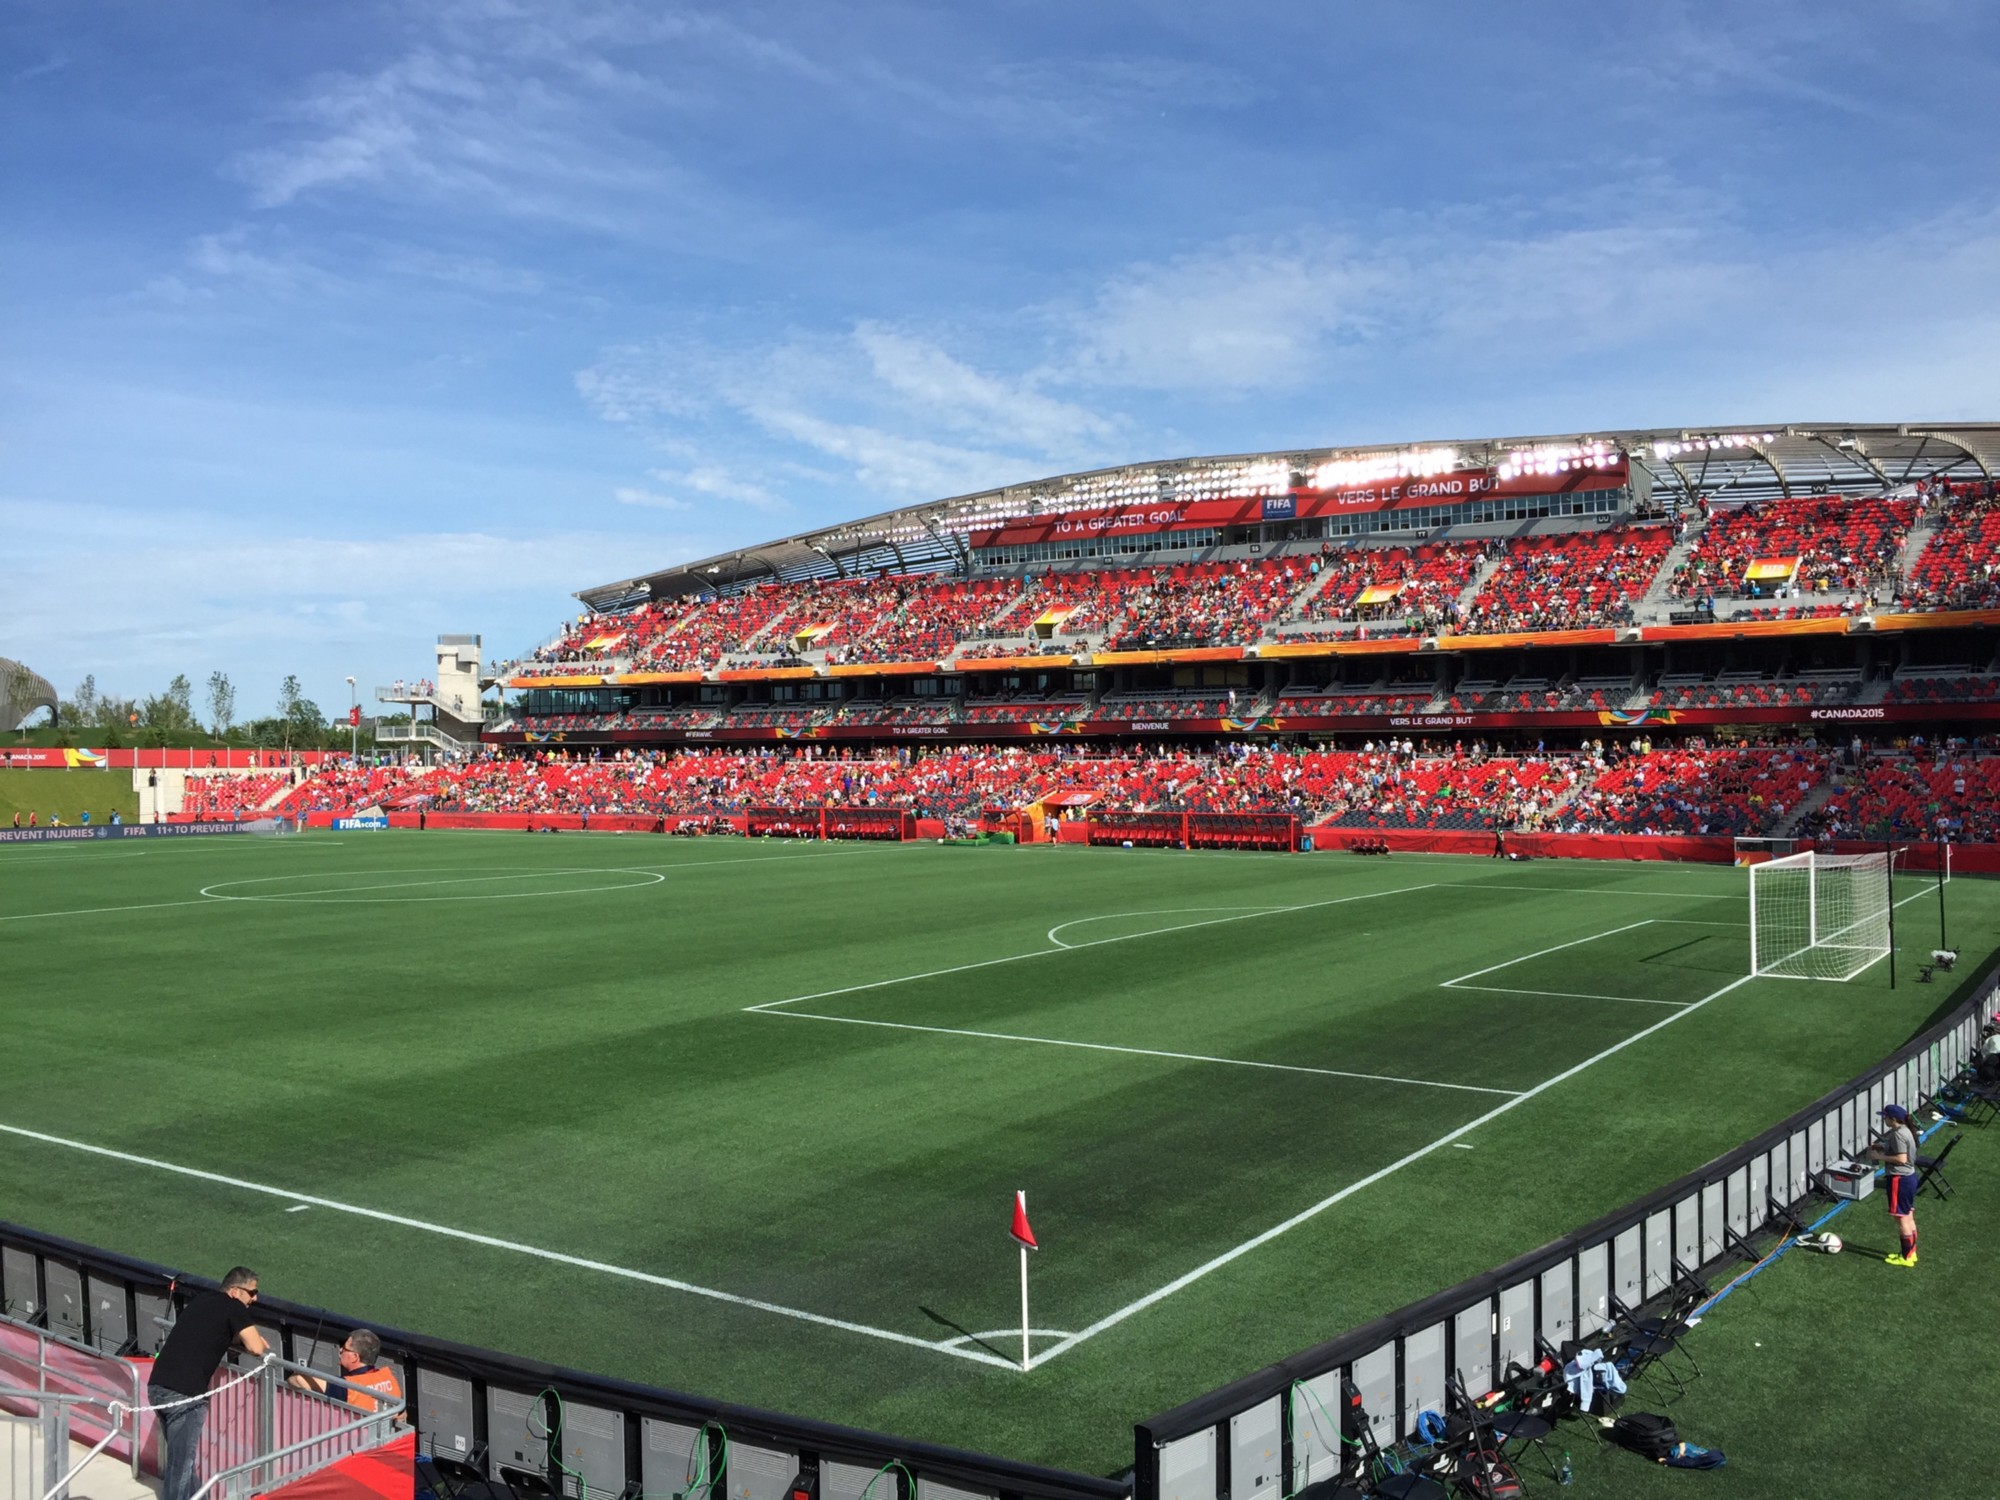 Fantastic lower division stadium, when Toronto fans aren't trying to burn it down